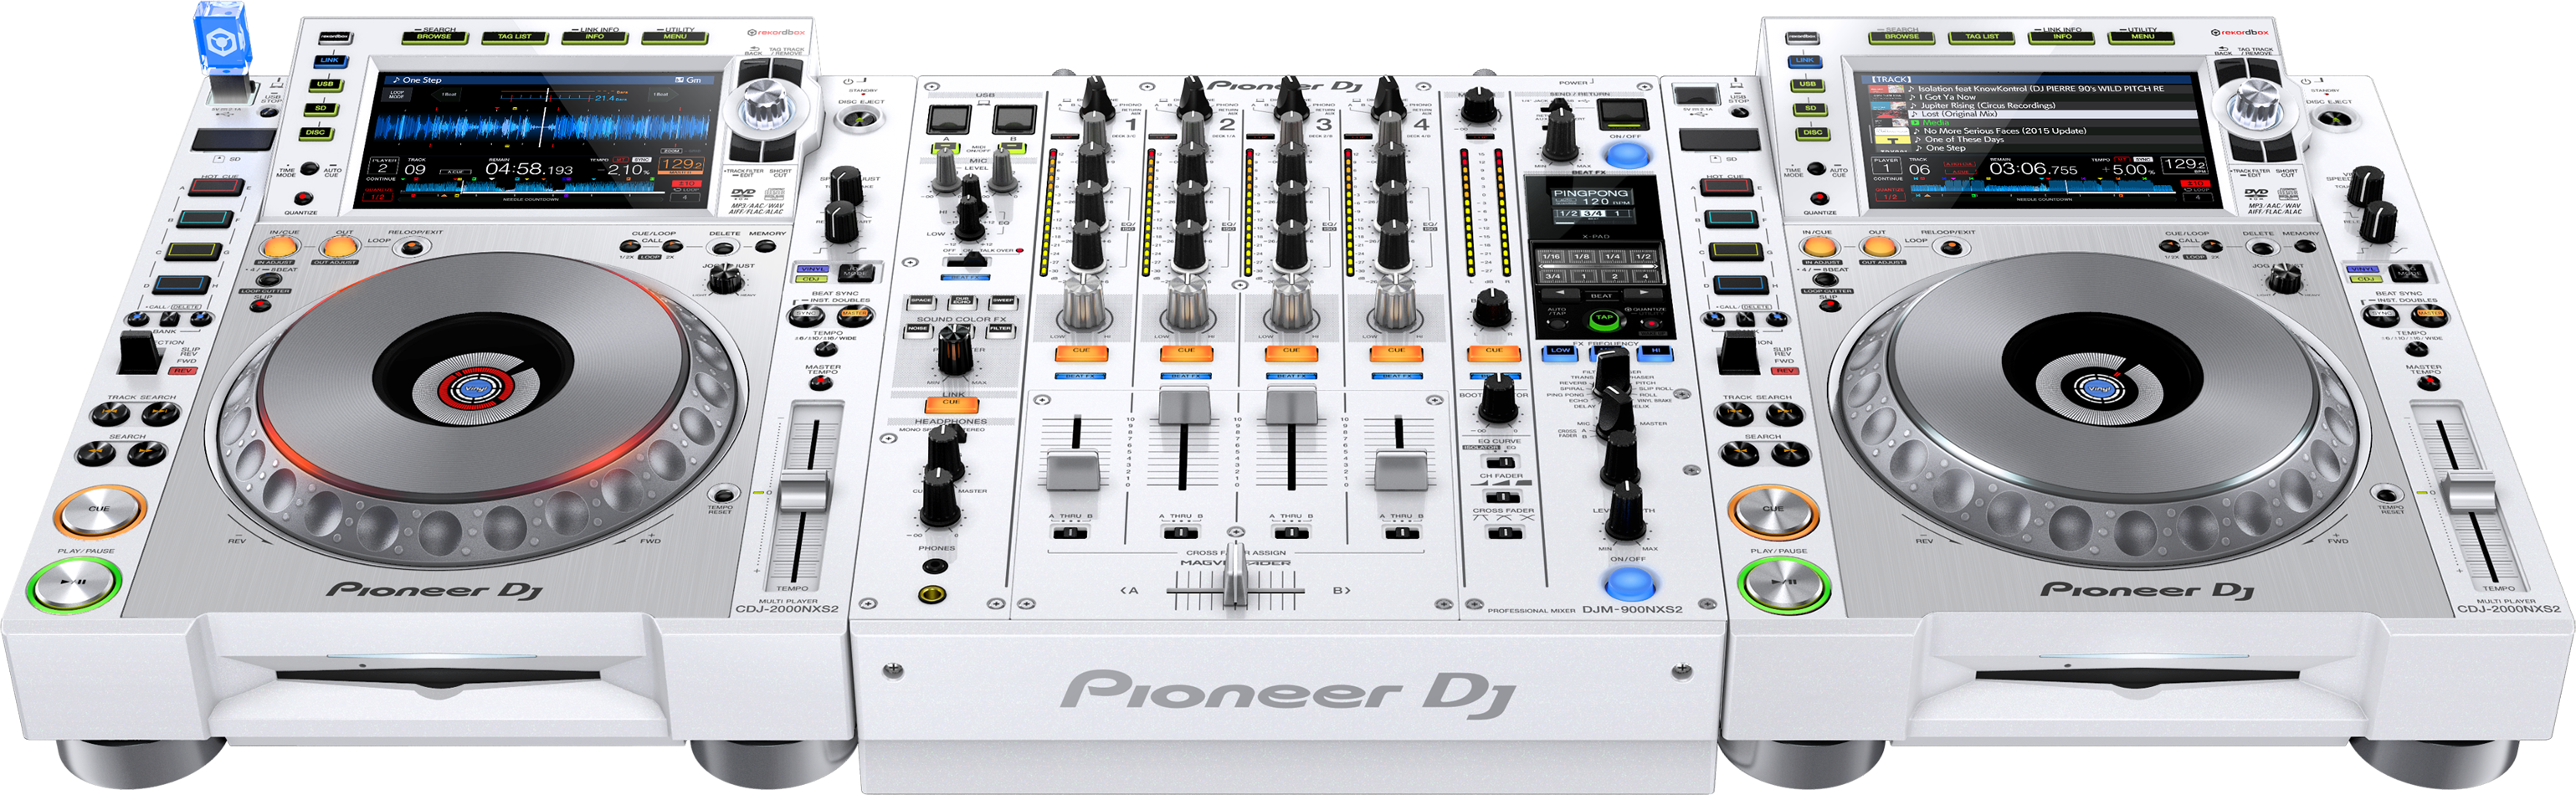 pioneer dj announce new white cdjs and djm. Black Bedroom Furniture Sets. Home Design Ideas